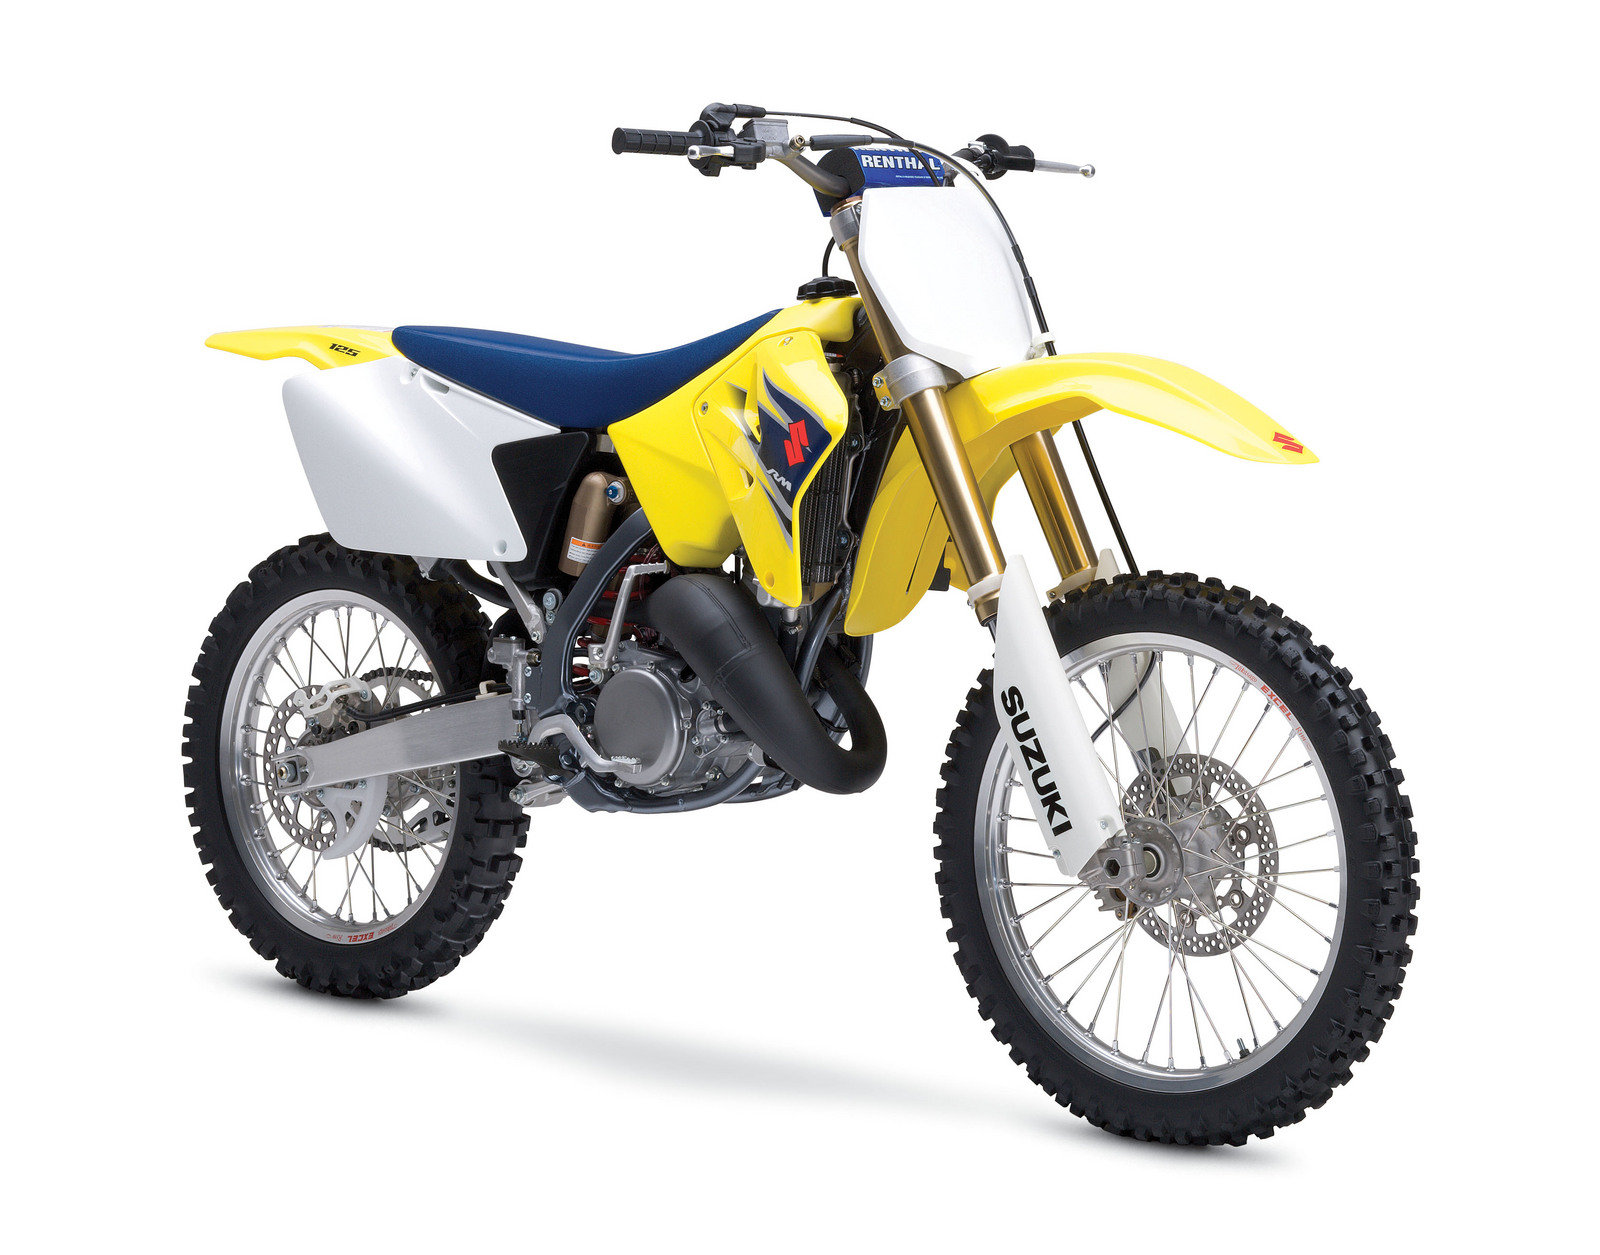 2008 ktm 125 sx picture 231879 motorcycle review top speed. Black Bedroom Furniture Sets. Home Design Ideas